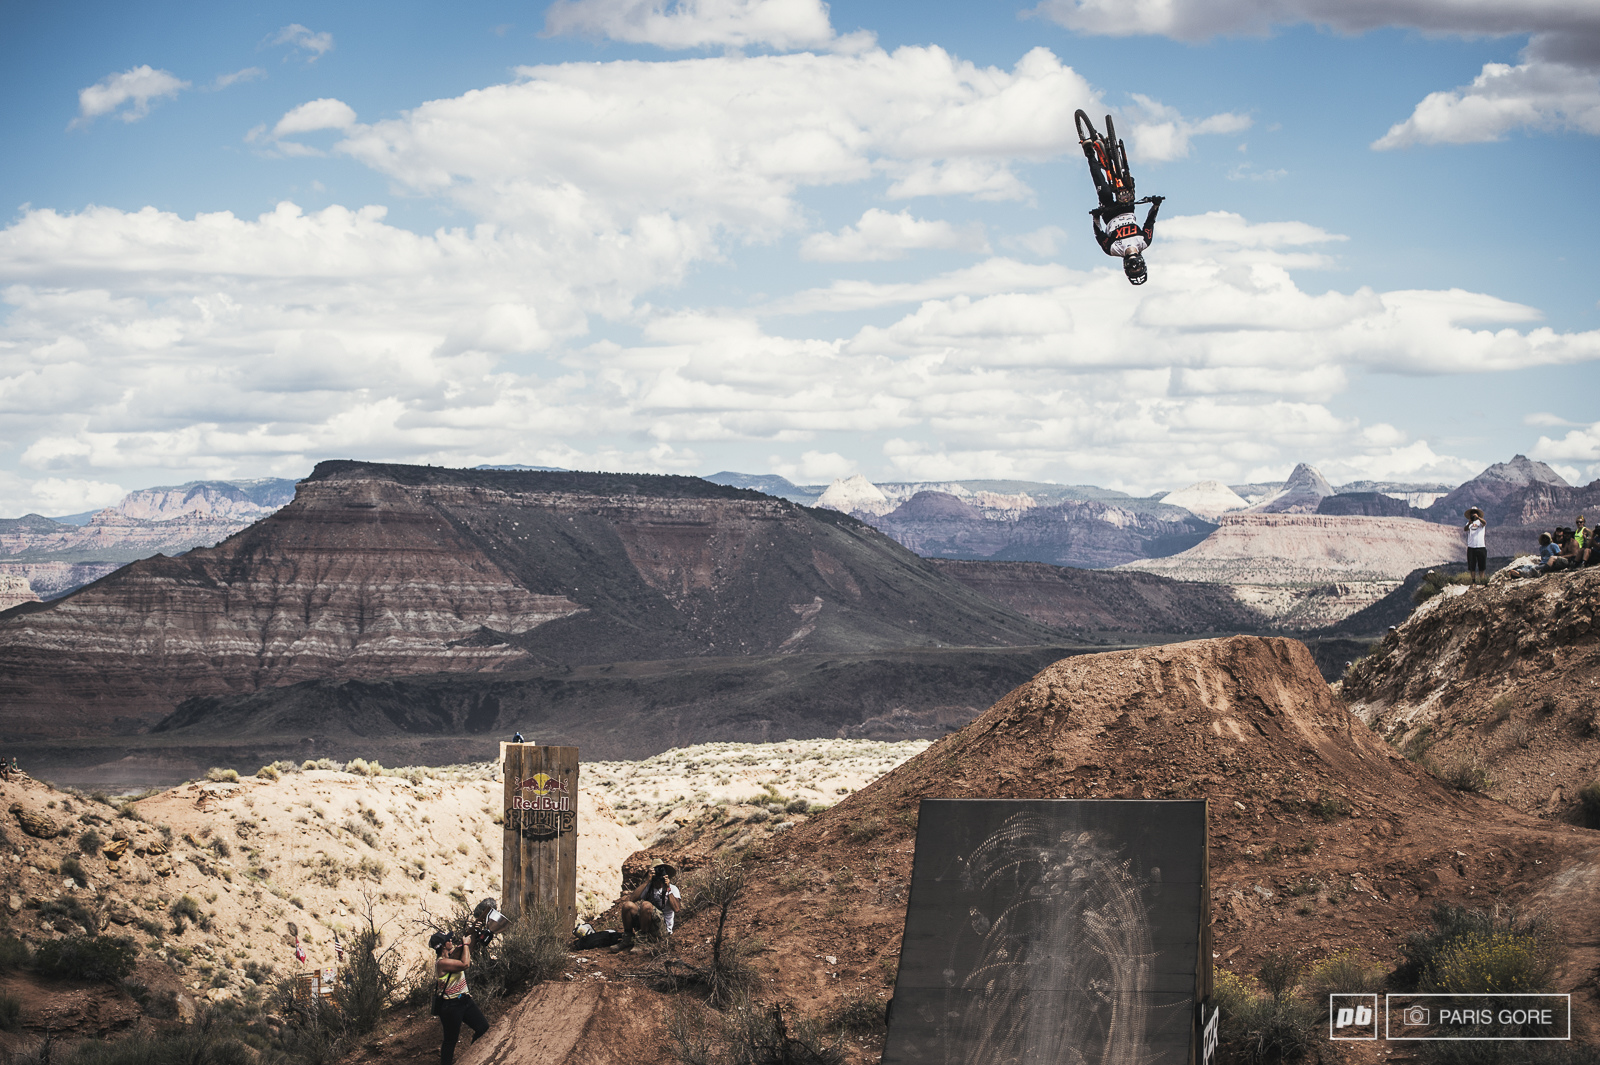 Brett Rheeder blasting upside down over Zion and into the first qualifier for today and guaranteed to ride on Sunday.